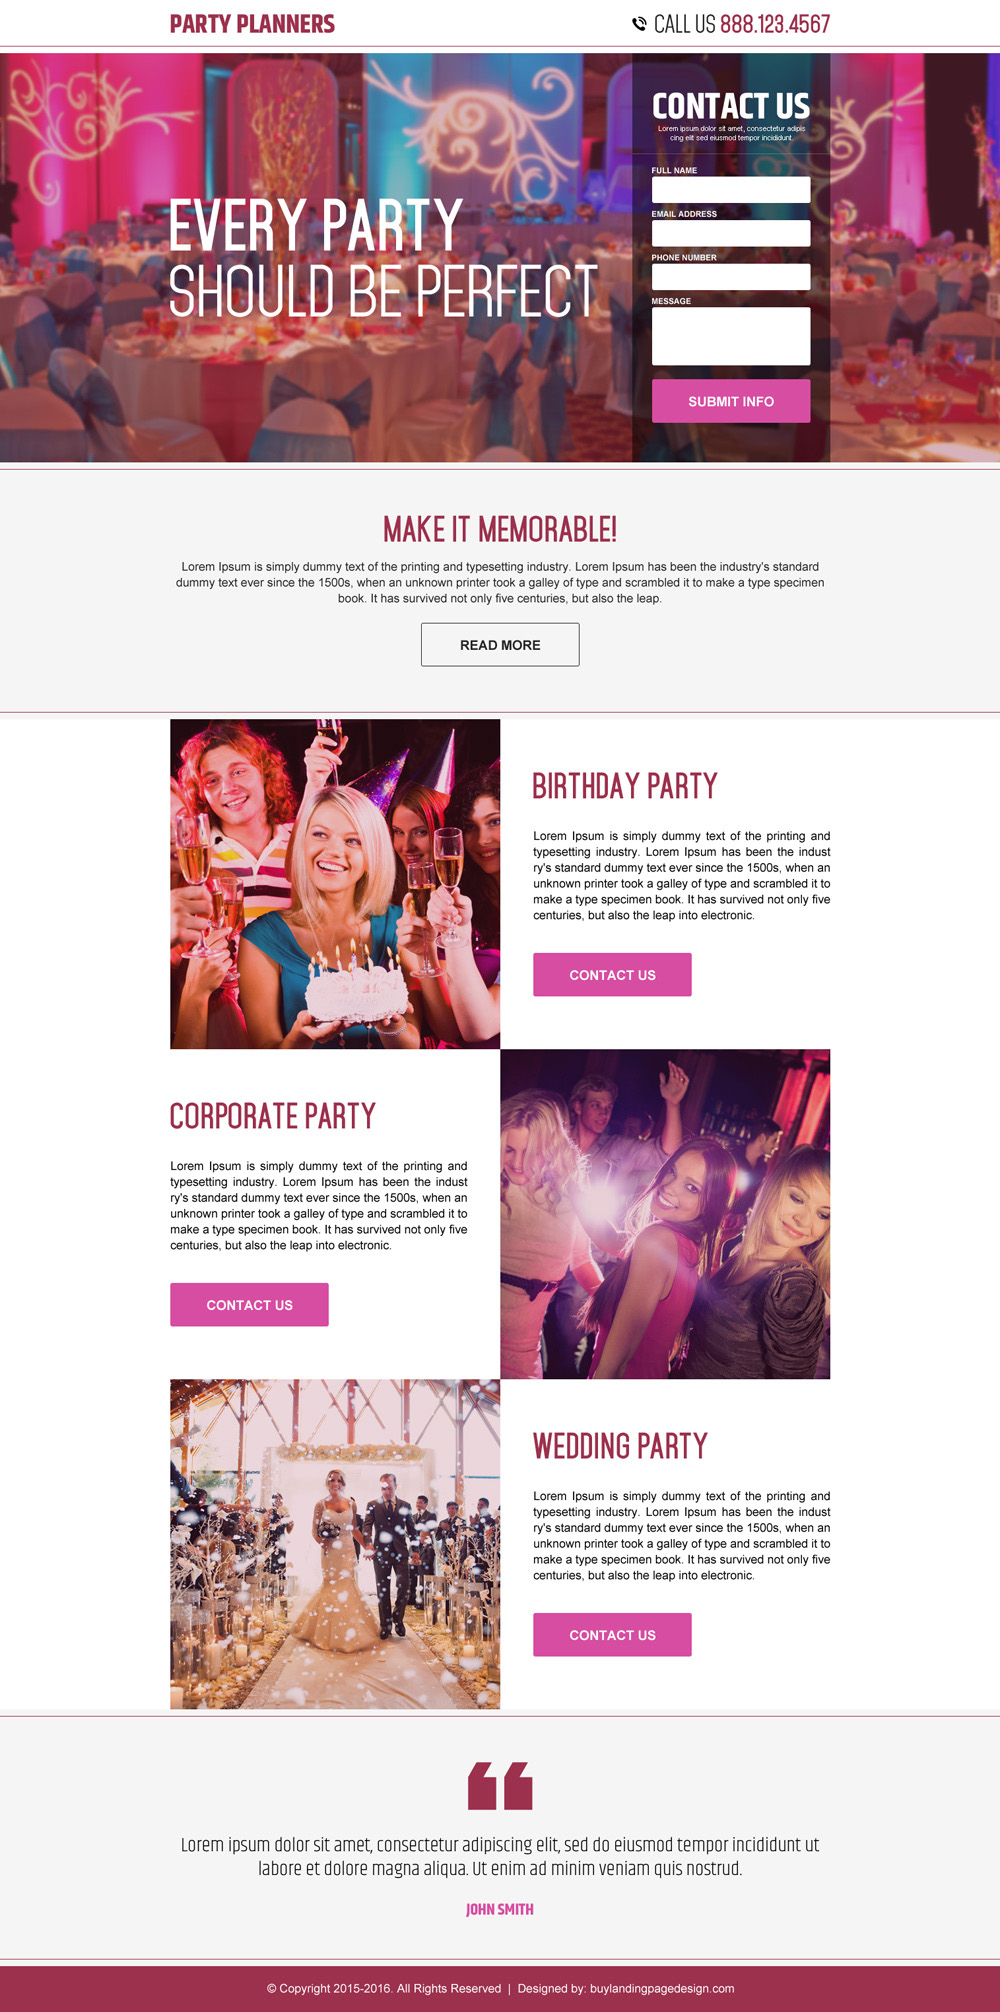 party-planner-landing-page-design-lead-gen-converting-landing-page-design-001